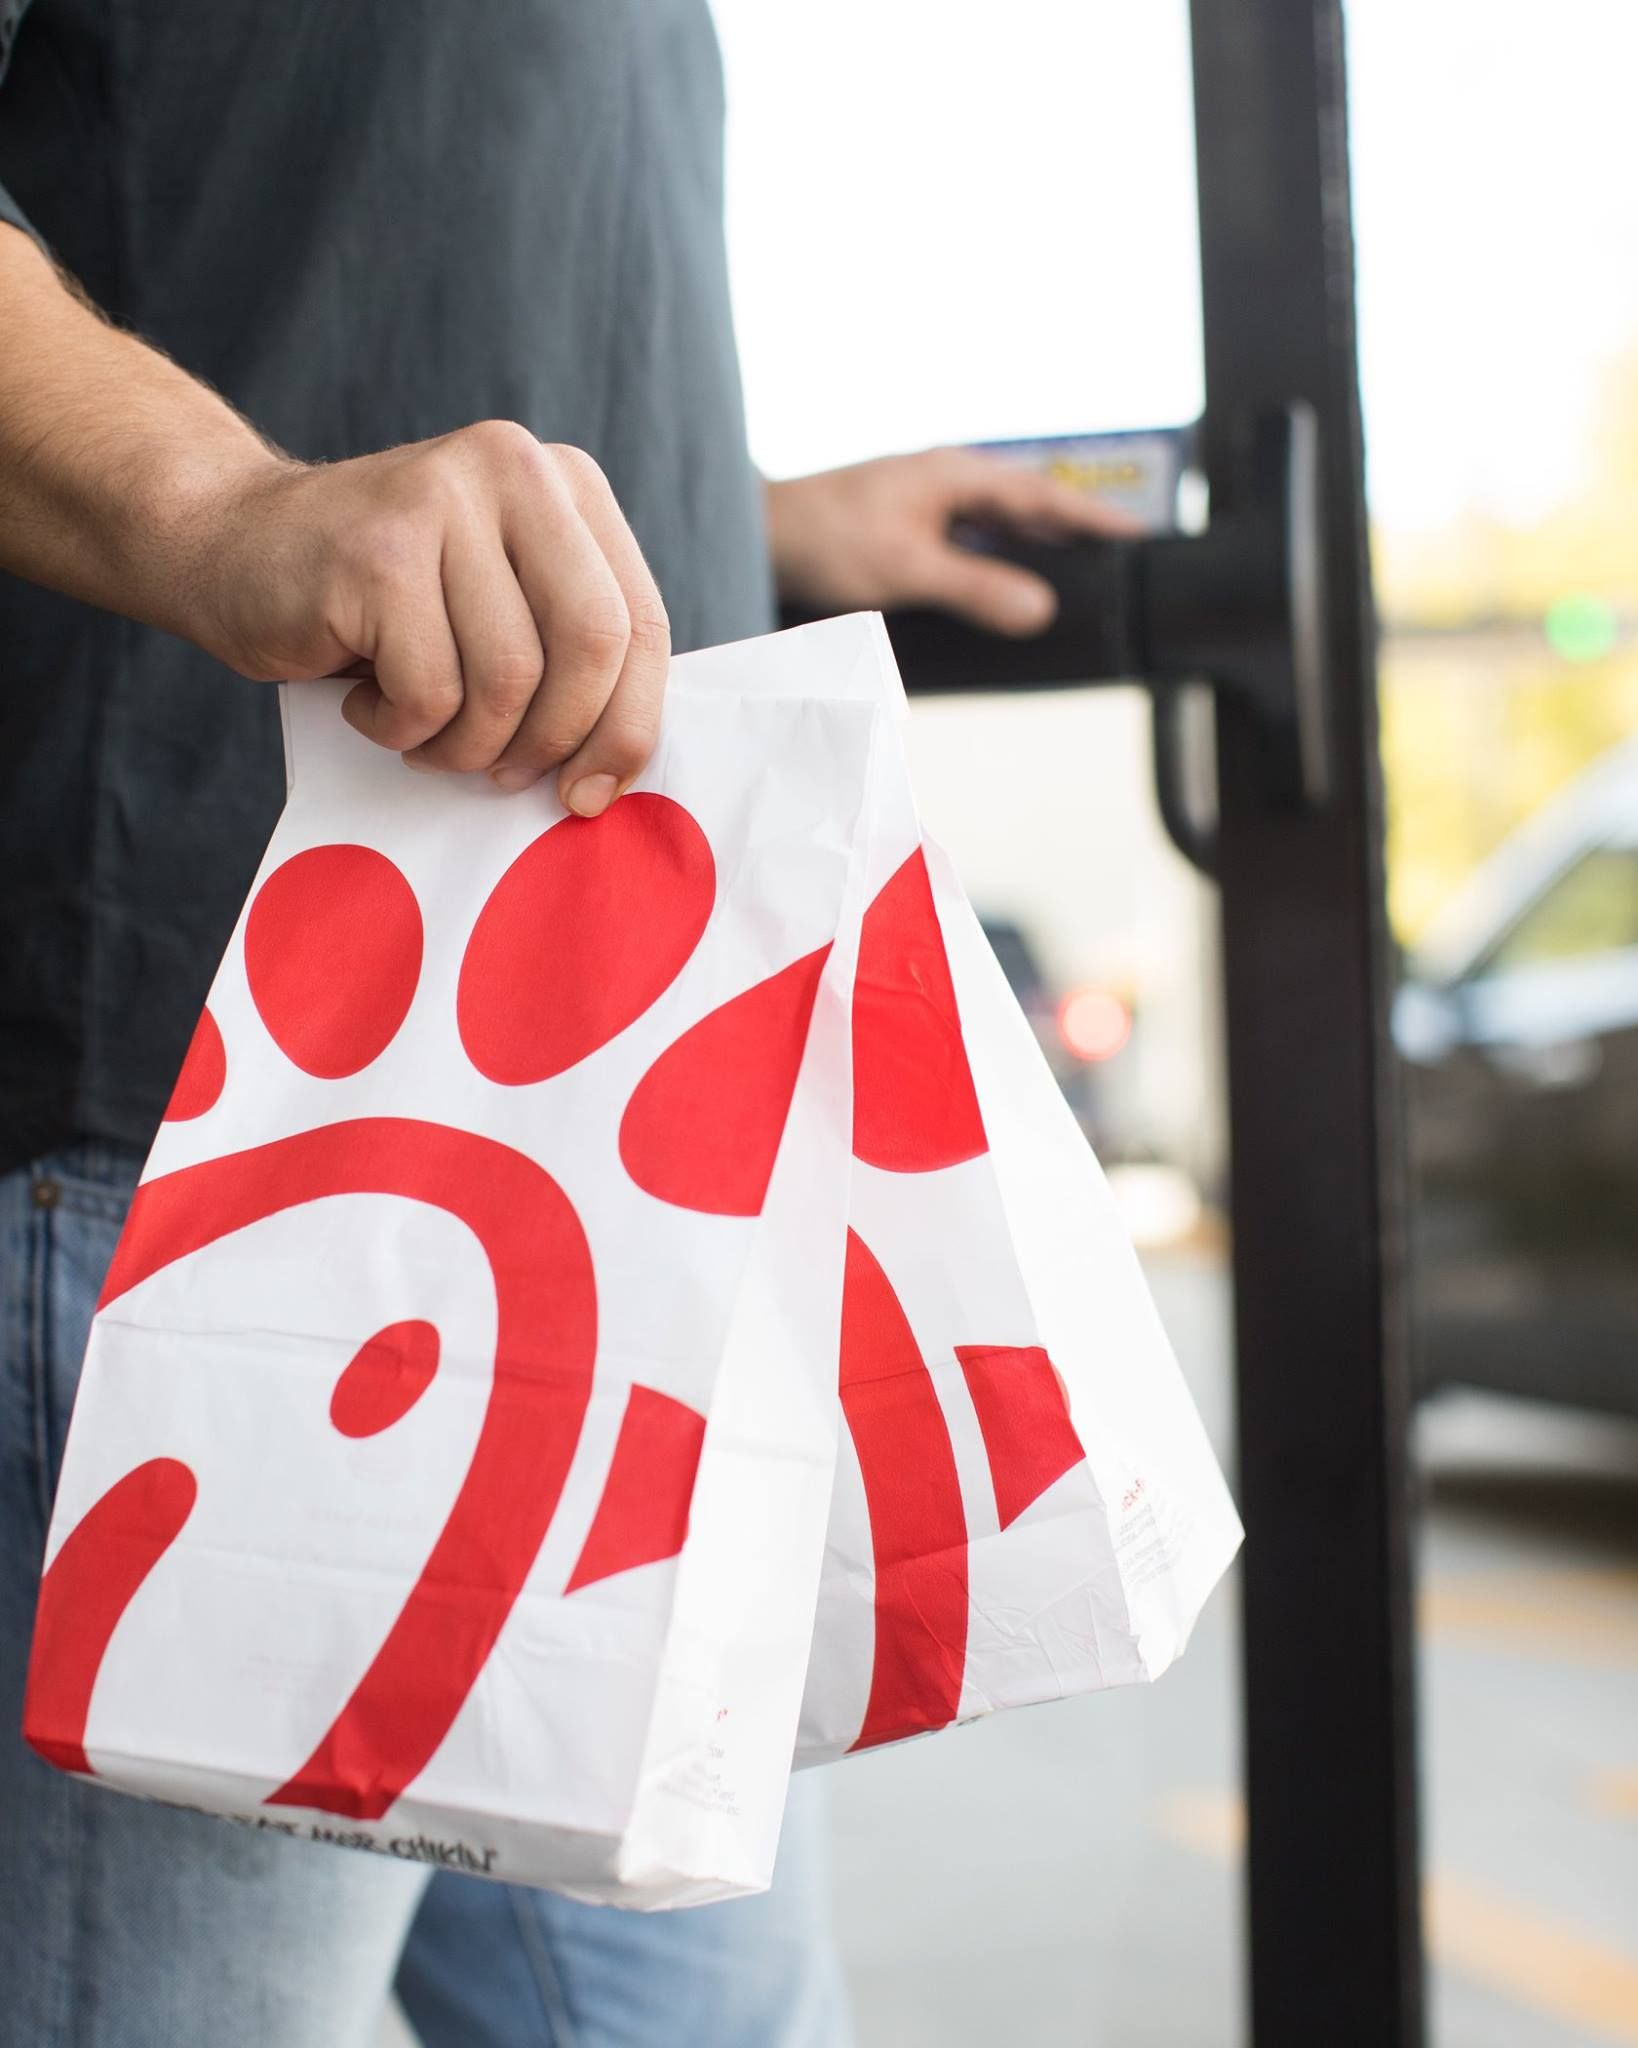 Is Chick-fil-A Open On Memorial Day?